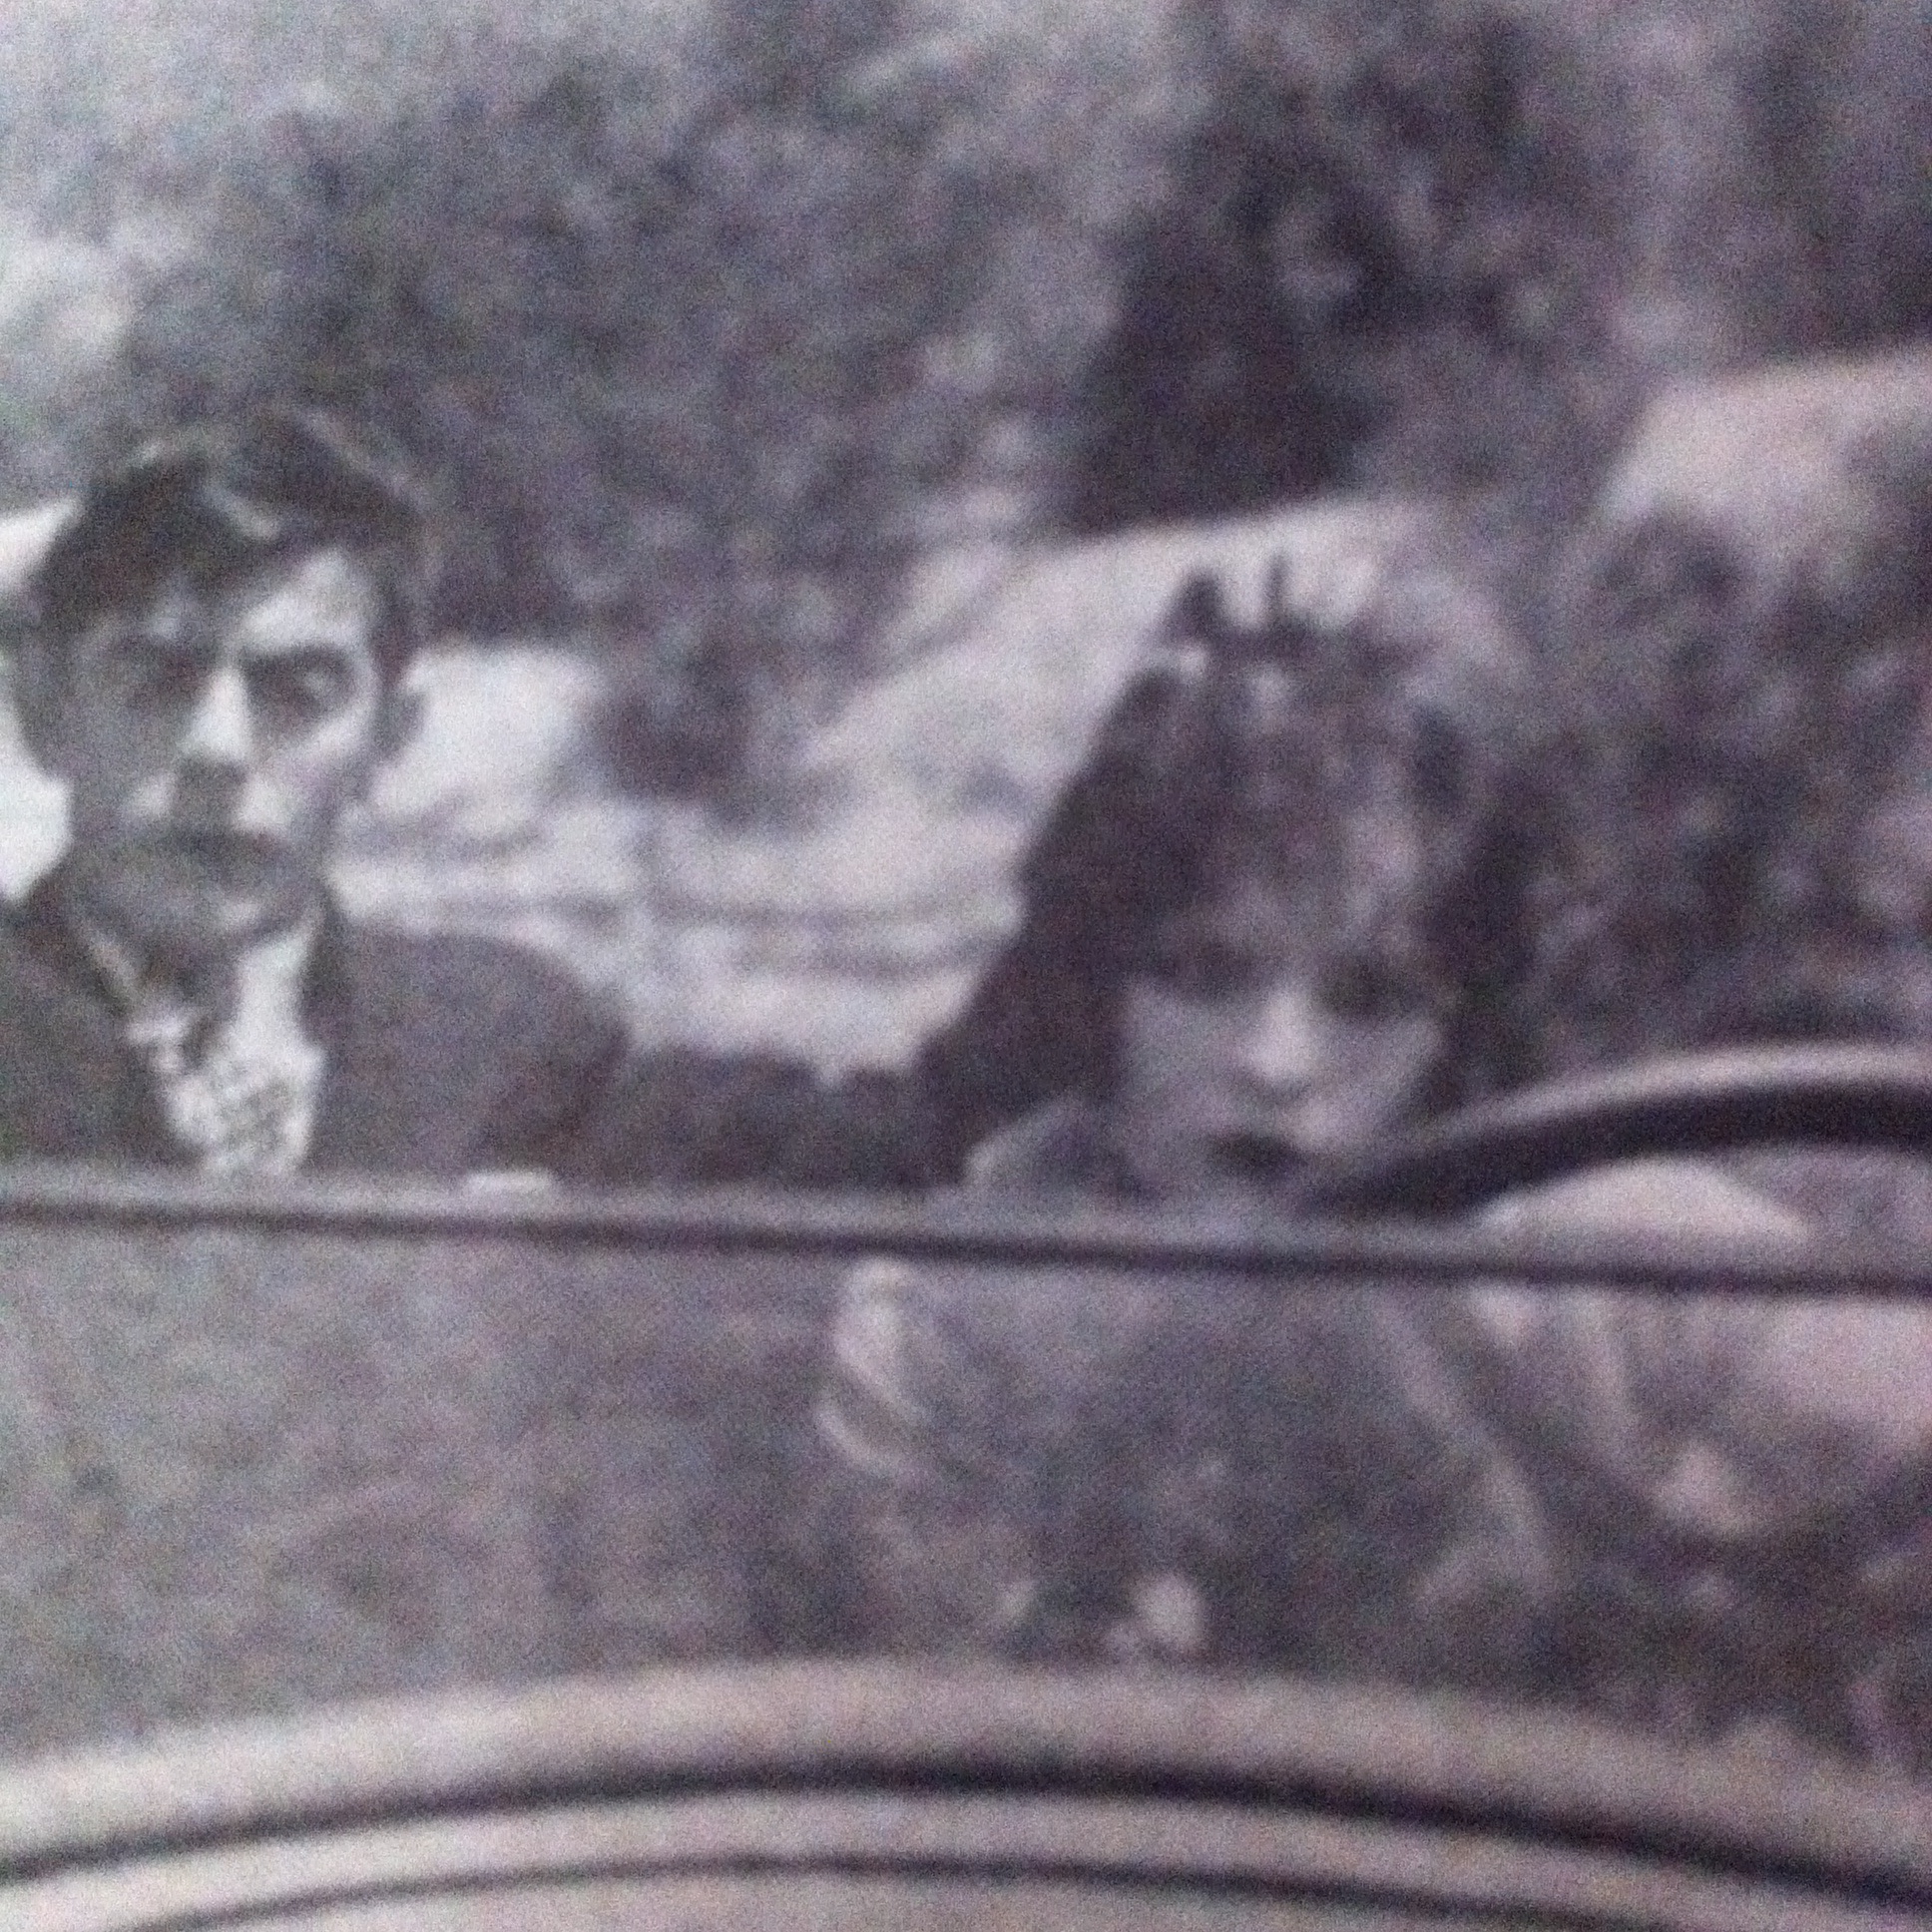 Clara Bow and Eddie Cantor in Kid Boots (1926)